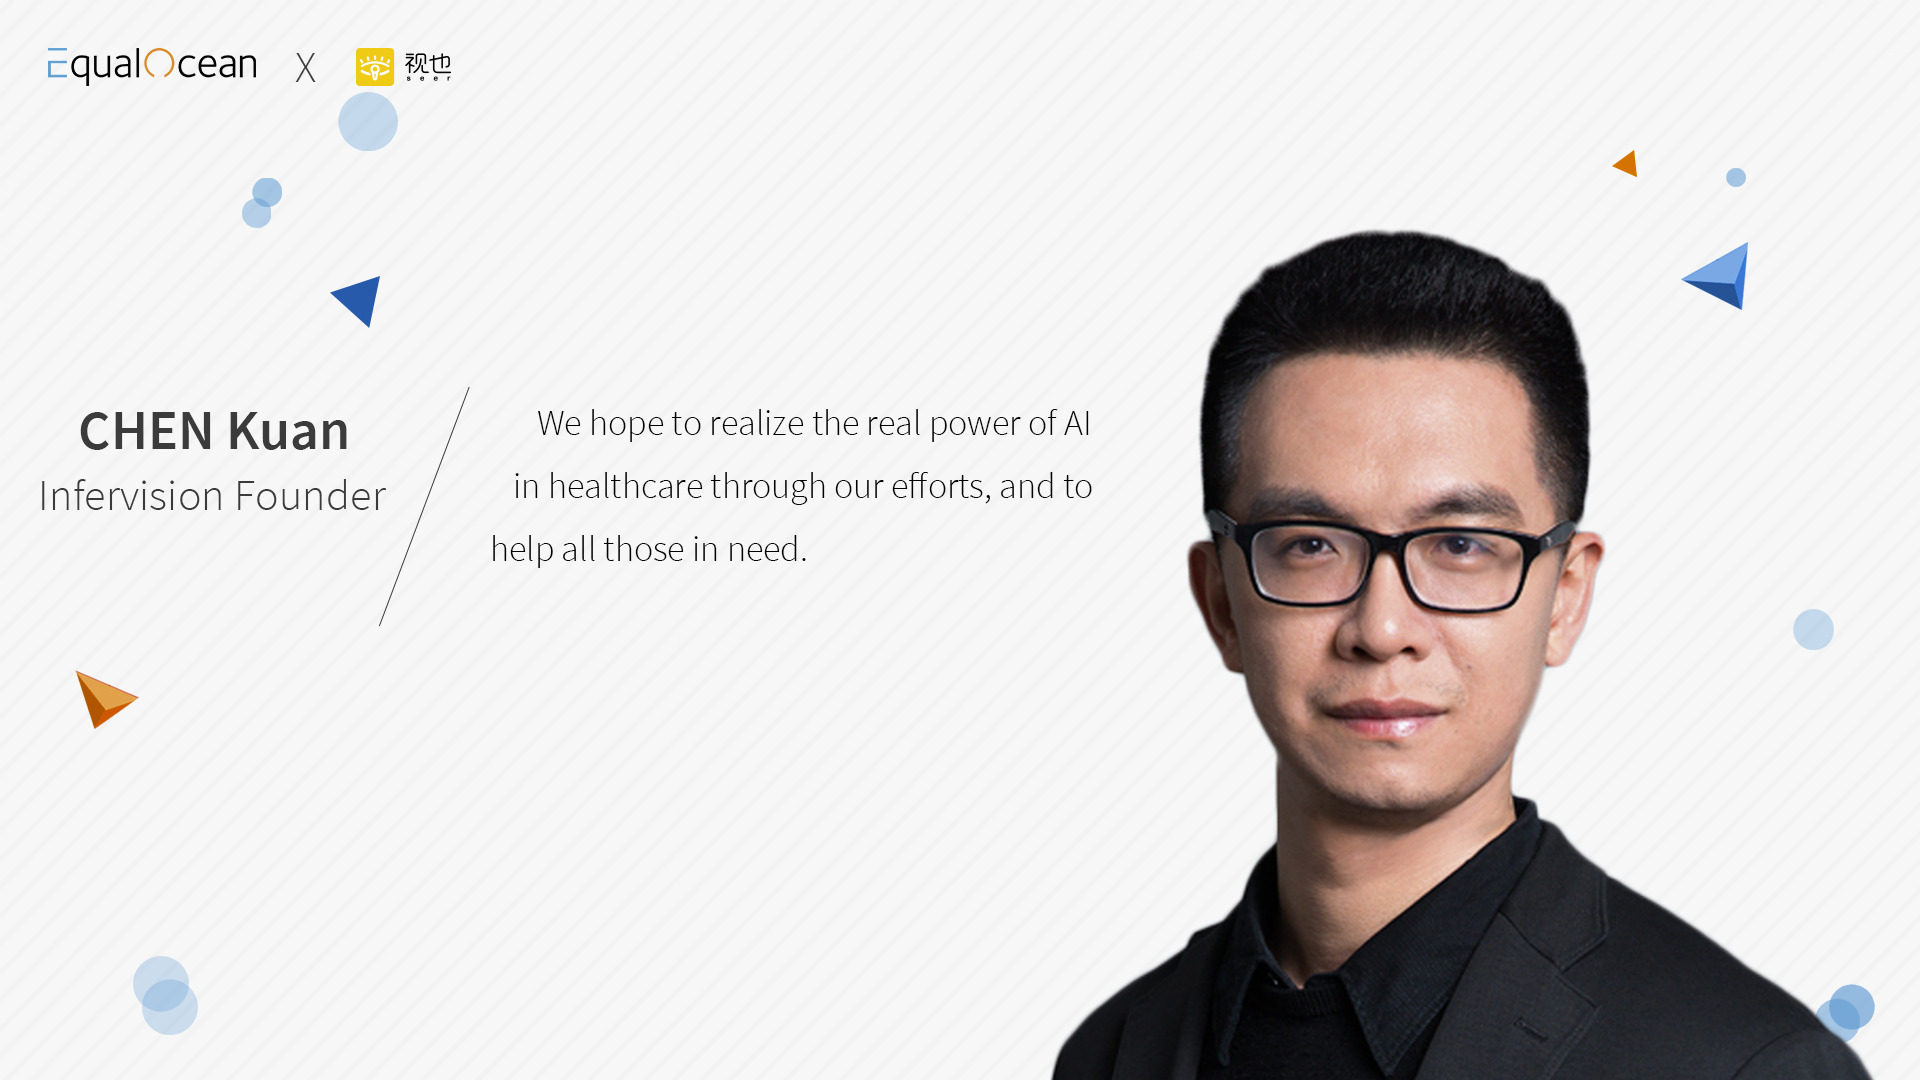 We Define AI - Infervision Founder, CHEN Kuan